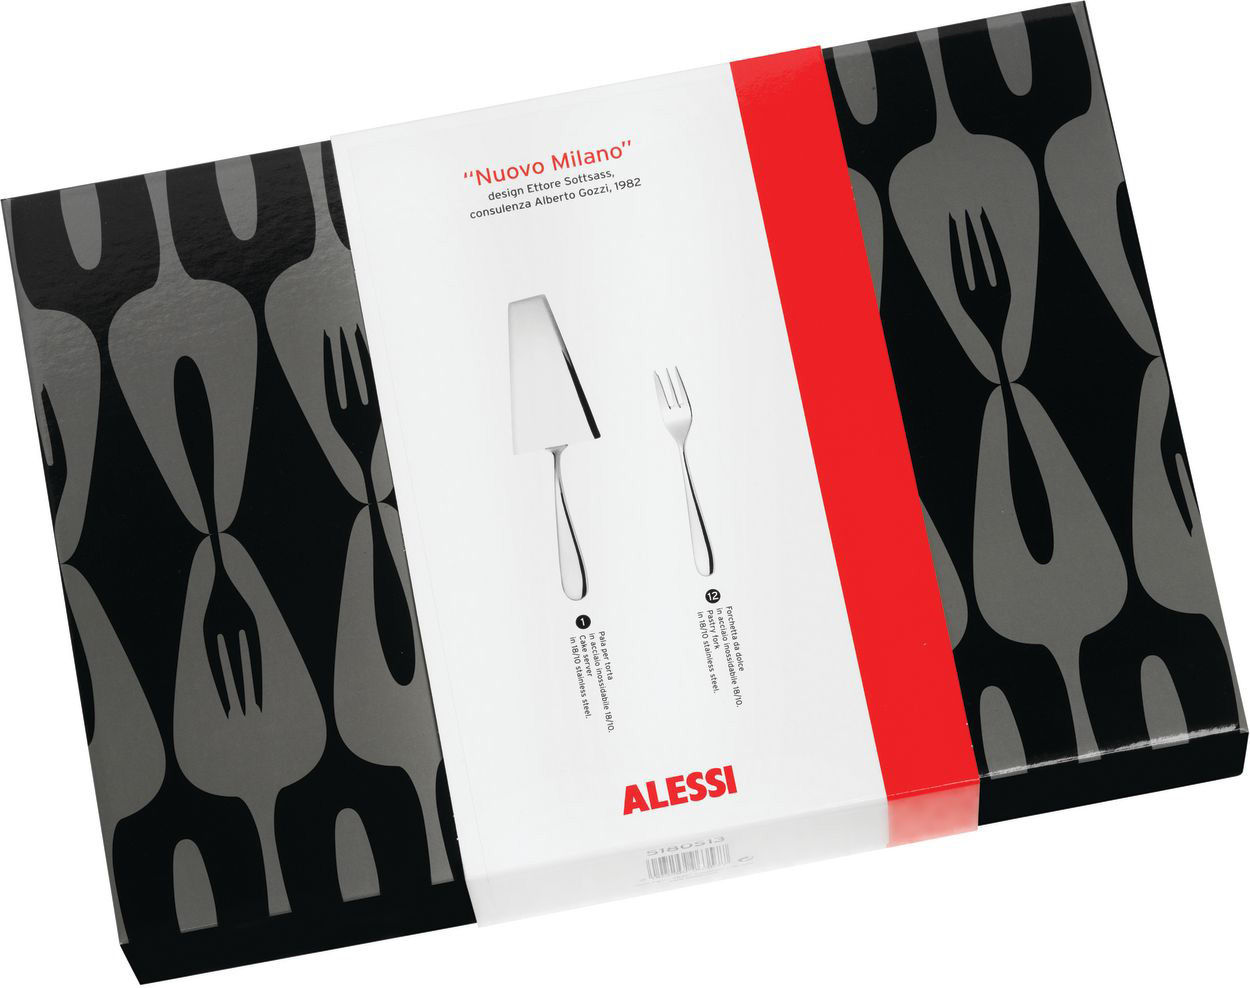 Tableware - Cutlery - Nuovo Milano Cutlery set - Dessert set (13 pieces) by Alessi - Mirror polished steel - Polished stainless steel